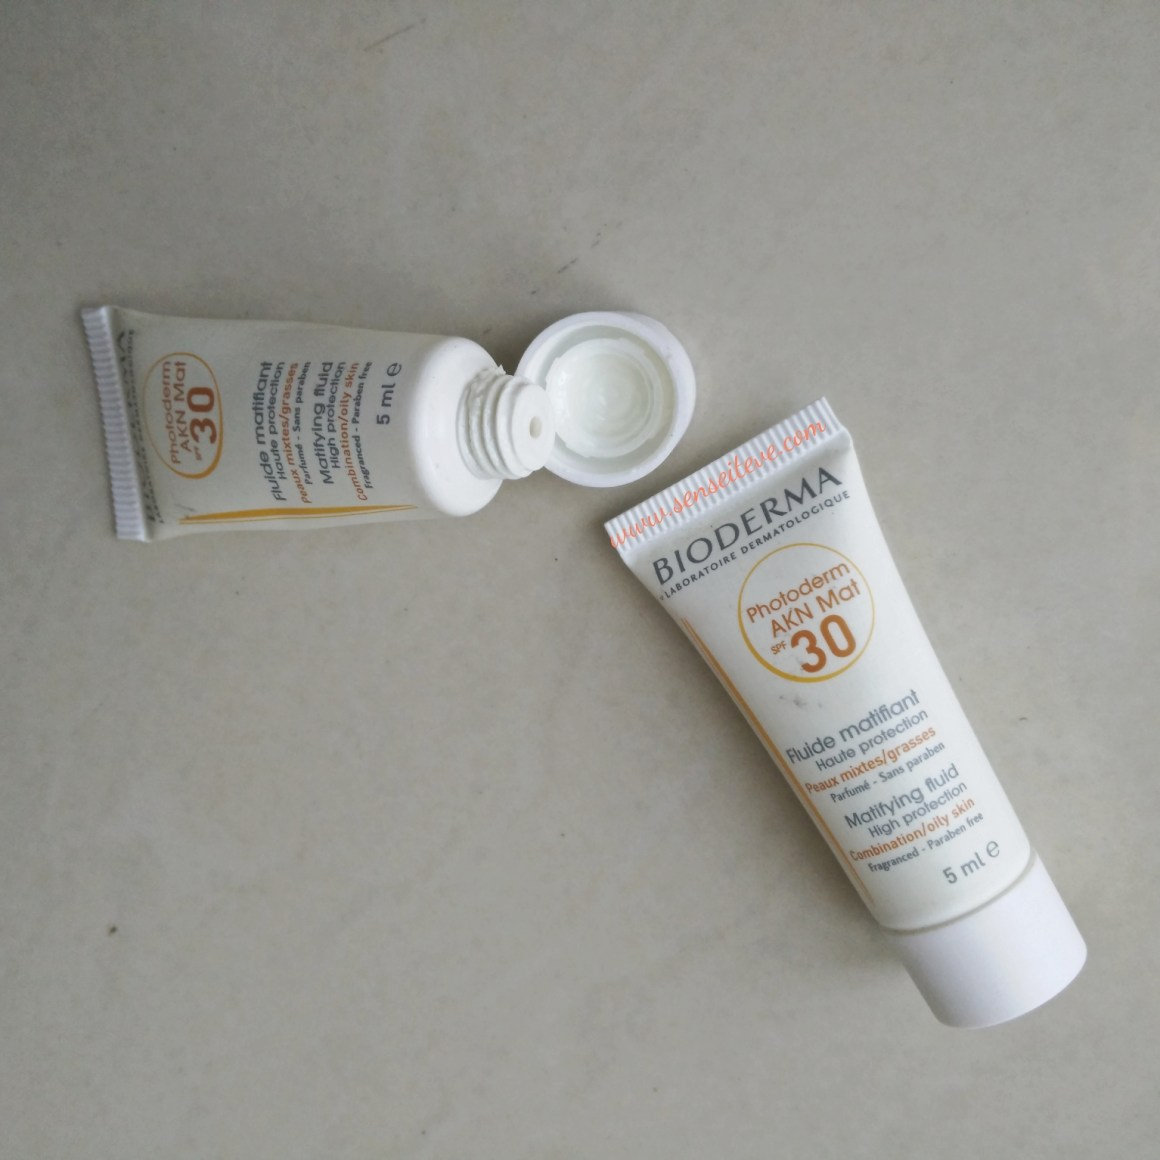 Bioderma Photoderm AKN Mat Sunscreen SPF 30